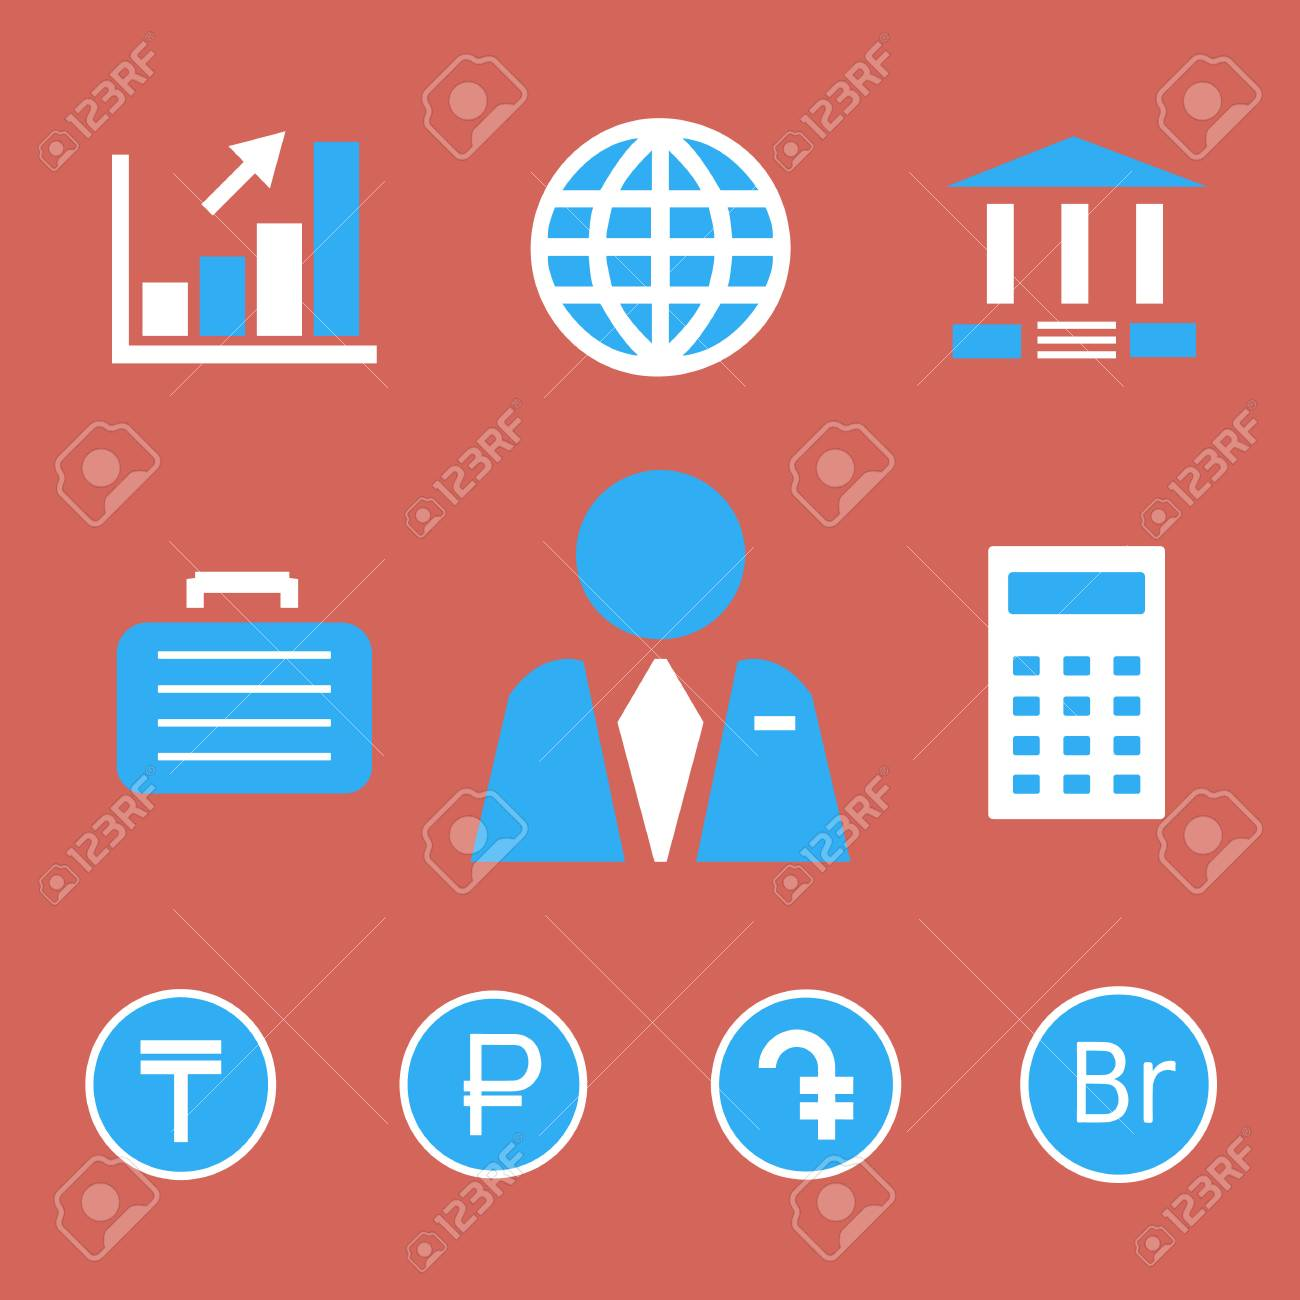 Finance And Bank Icons With Currency Symbols Of Tenge Russian